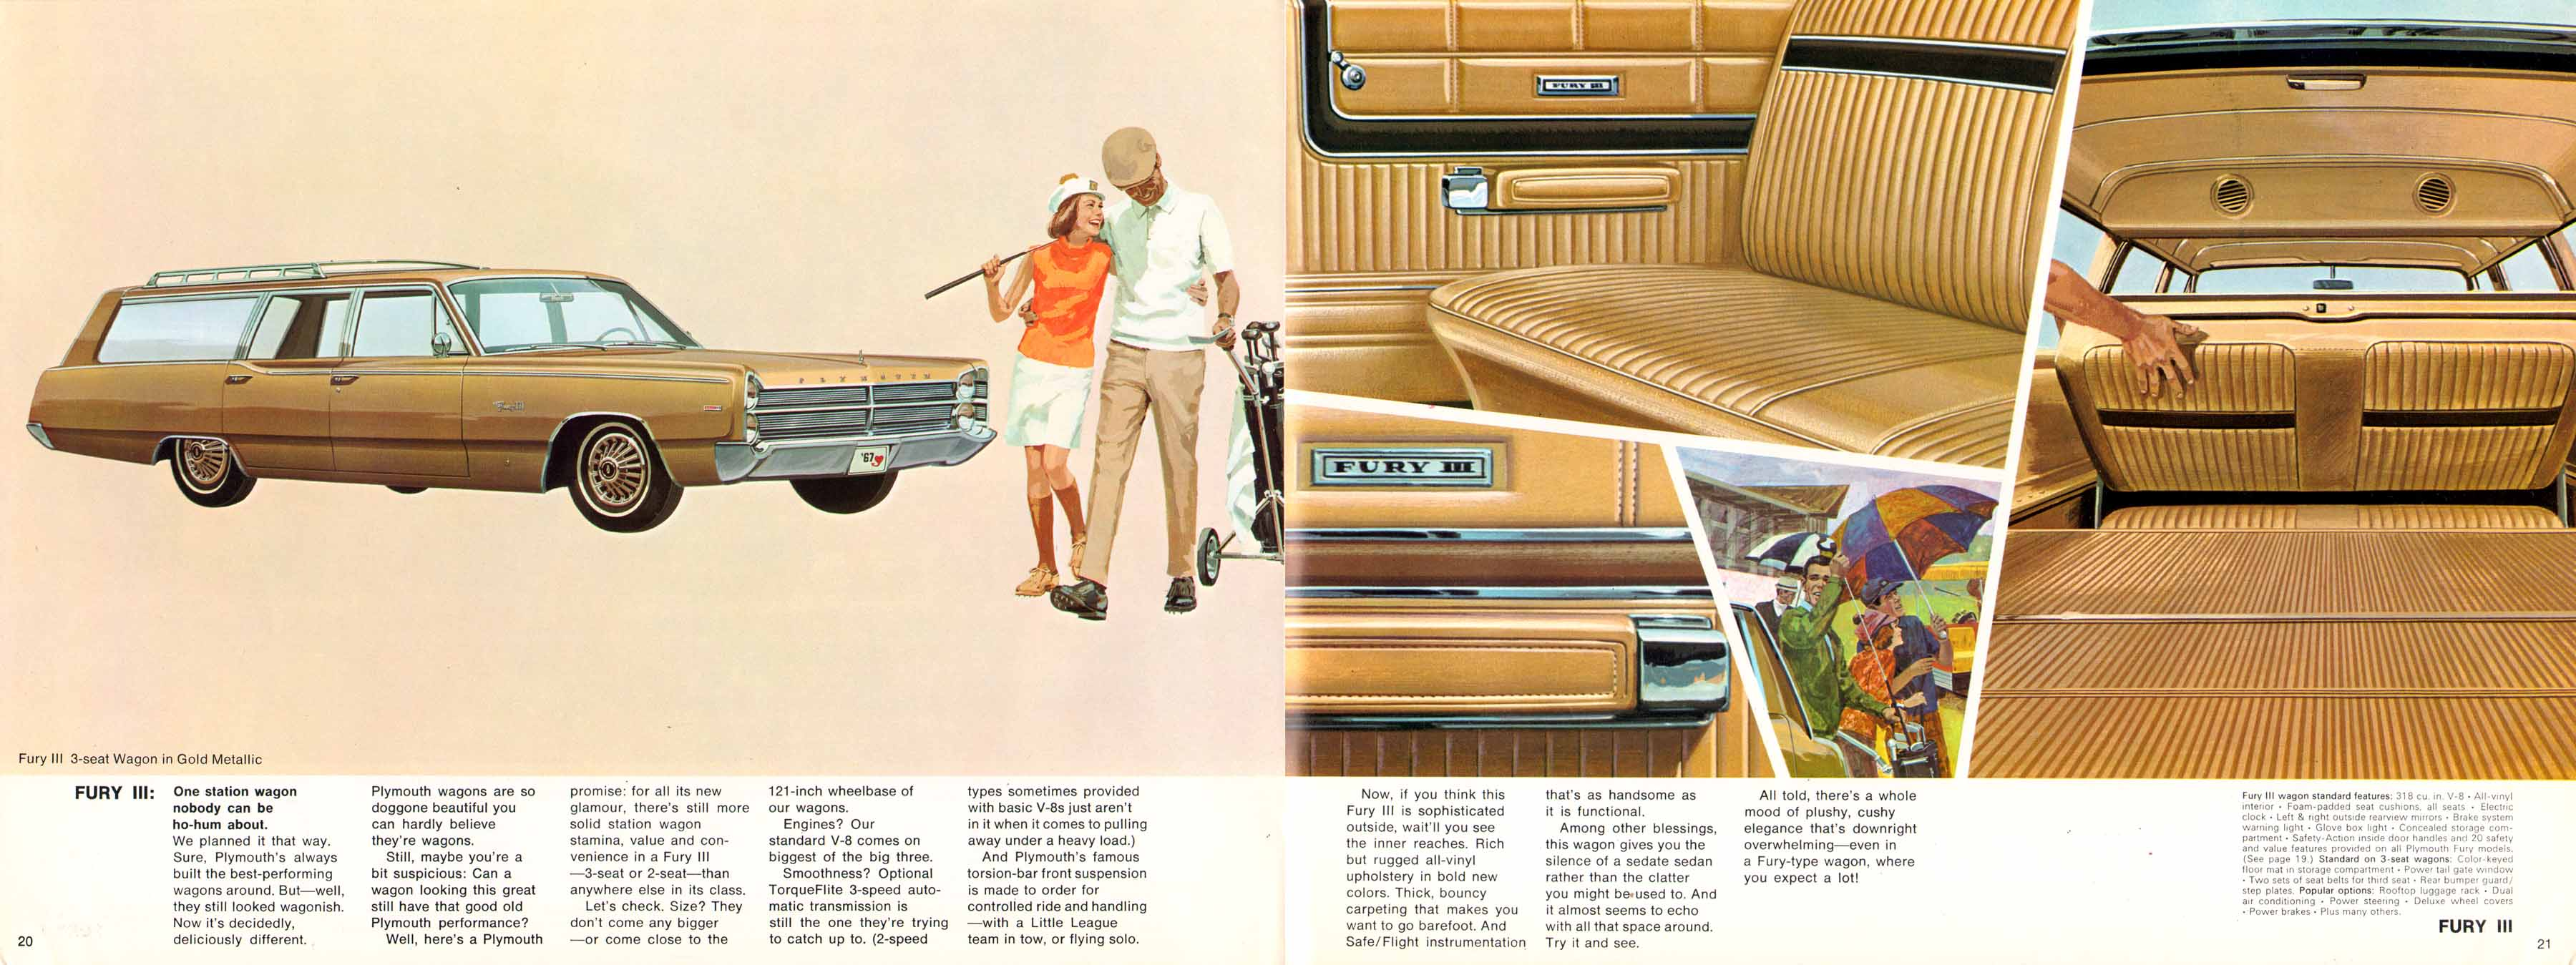 1967 Plymouth Colors Fury Engine Diagram Image 3600x1349